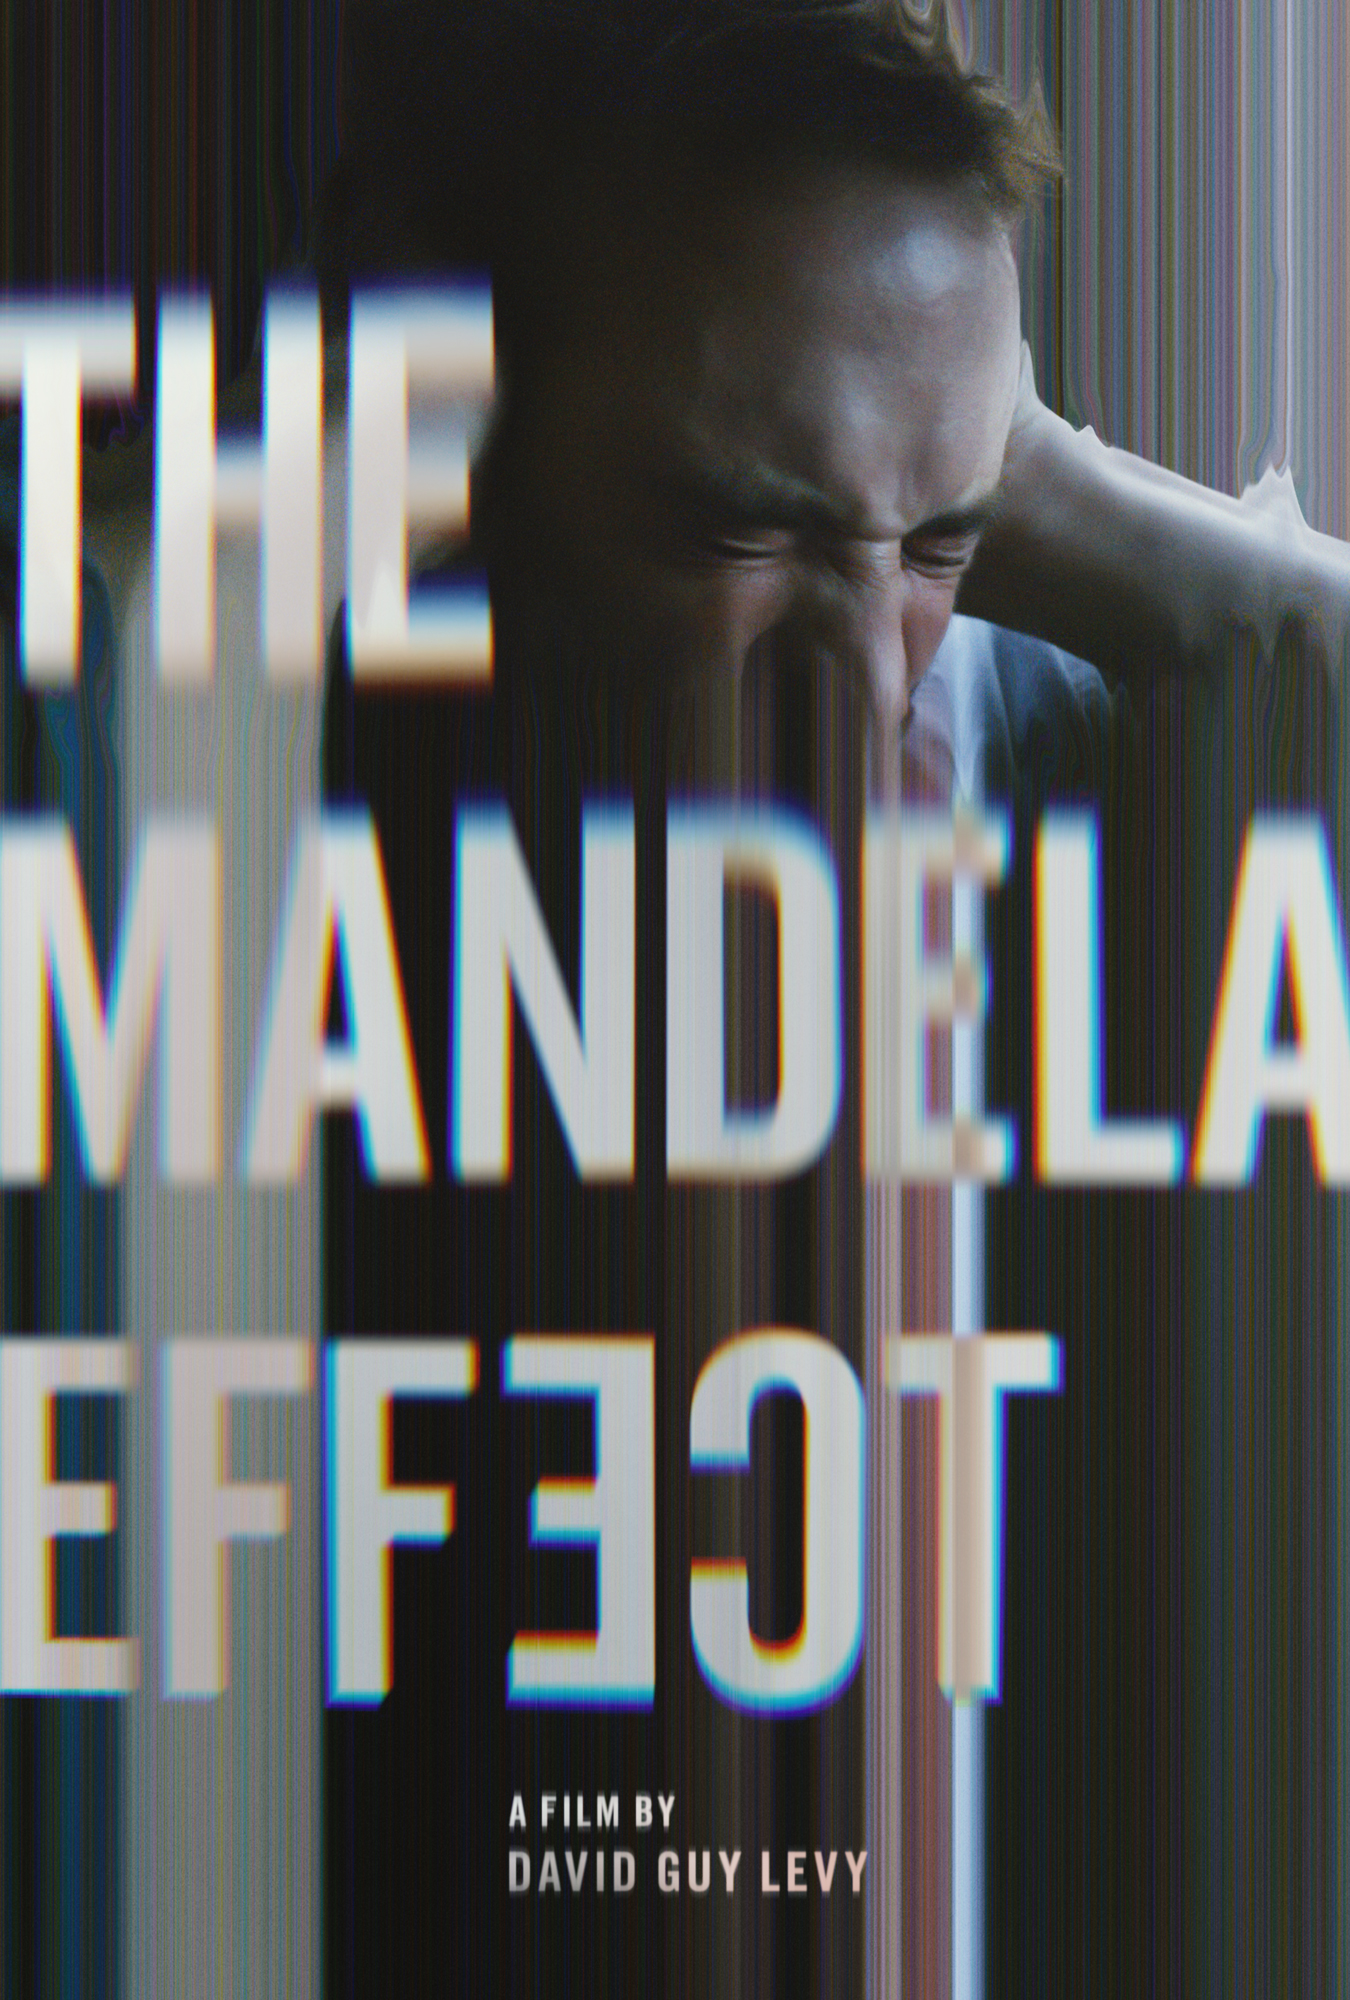 MANDELOS EFEKTAS (2019) / The Mandela Effect